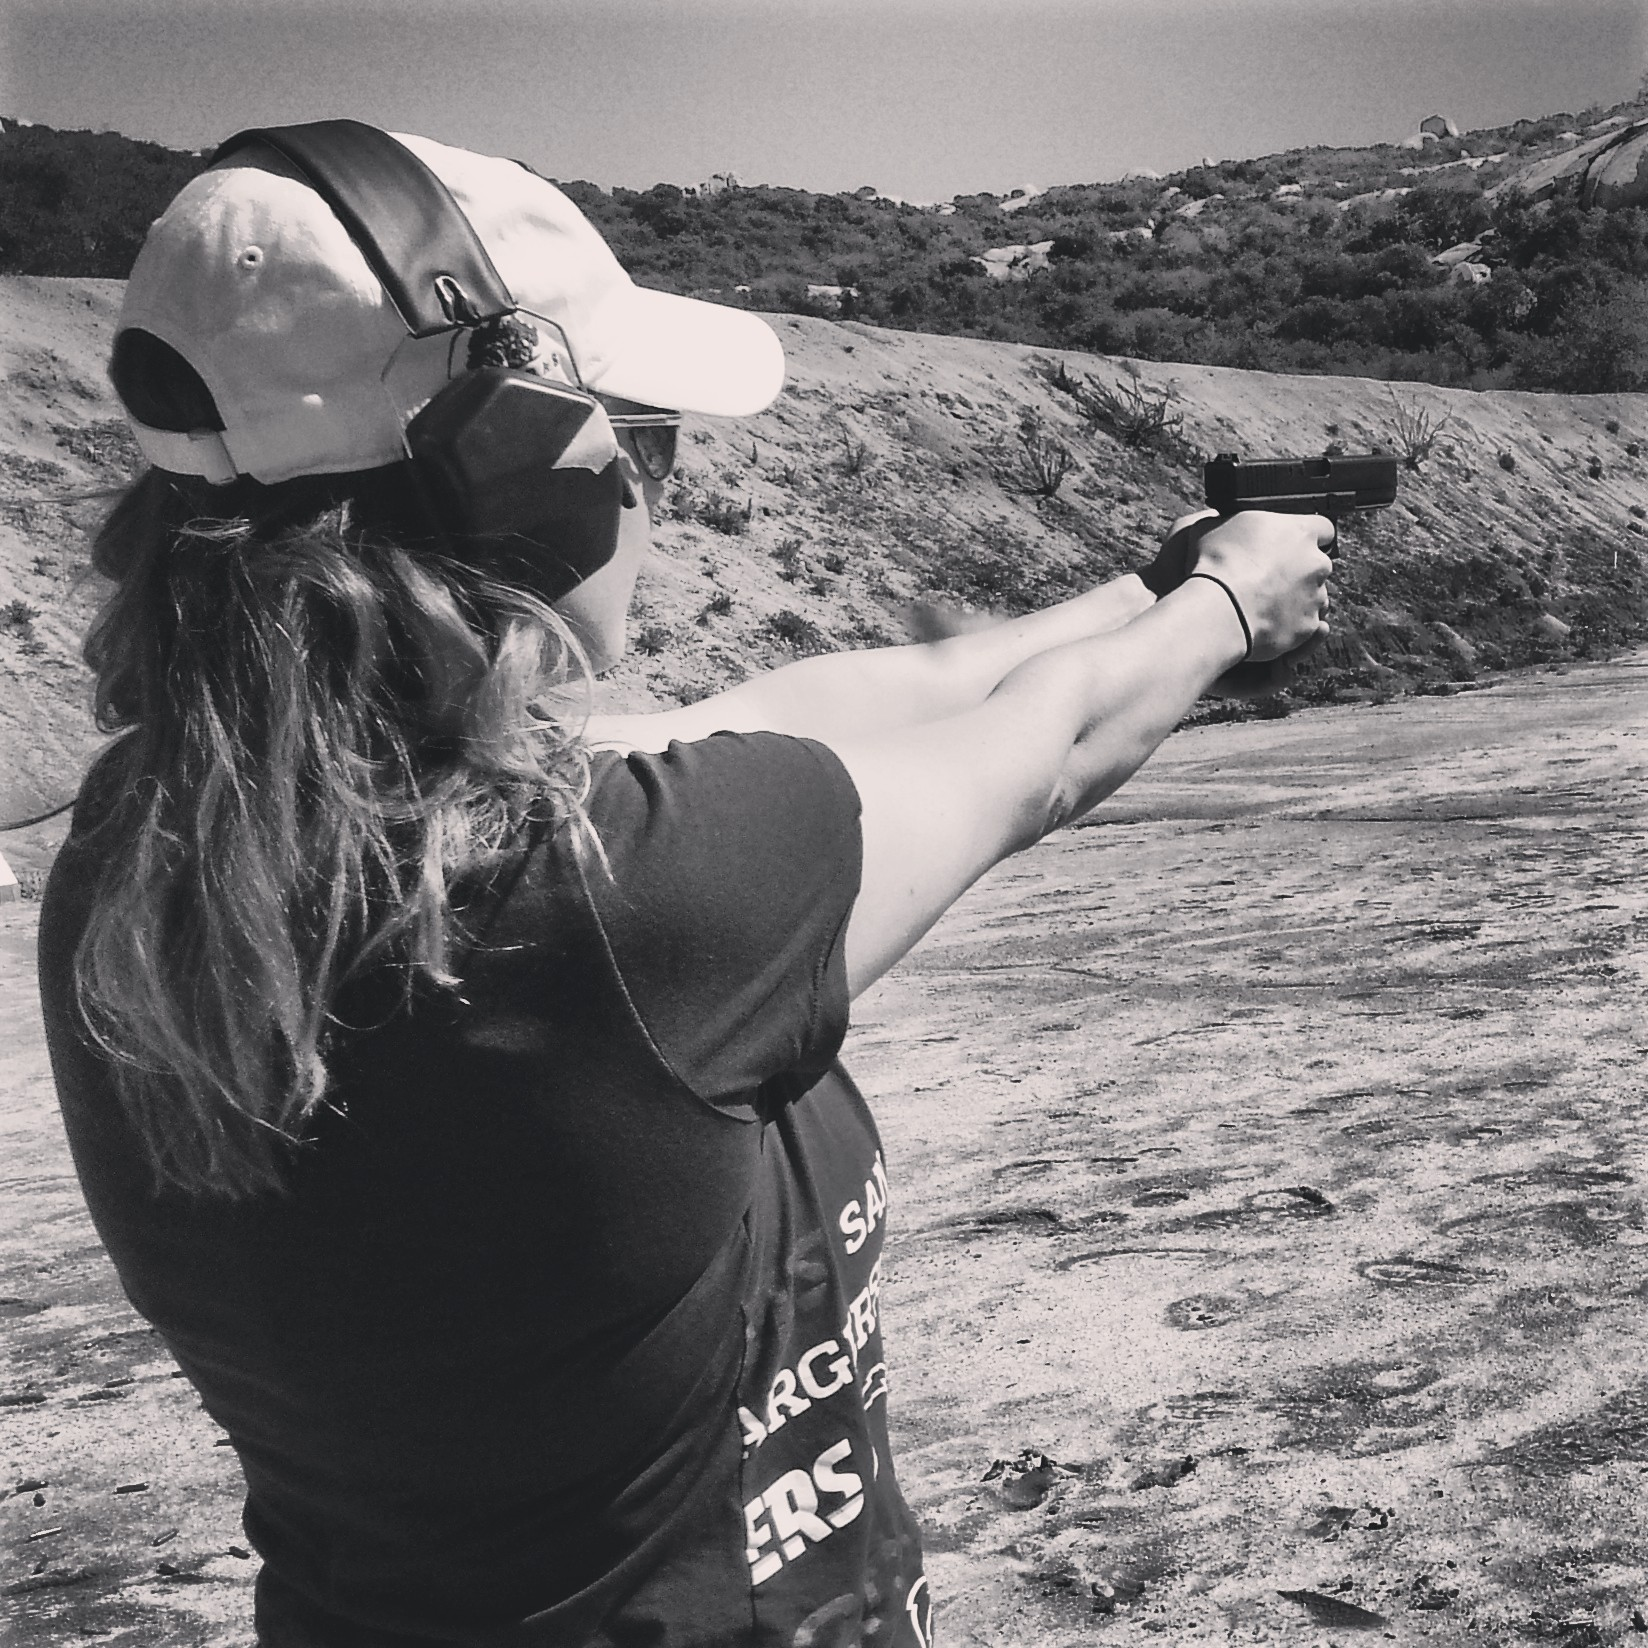 Why More Women Should Own A (Pink) Gun. Shooting range. https://reelcamogirl.wordpress.com/2015/01/13/why-more-women-should-own-a-pink-gun/